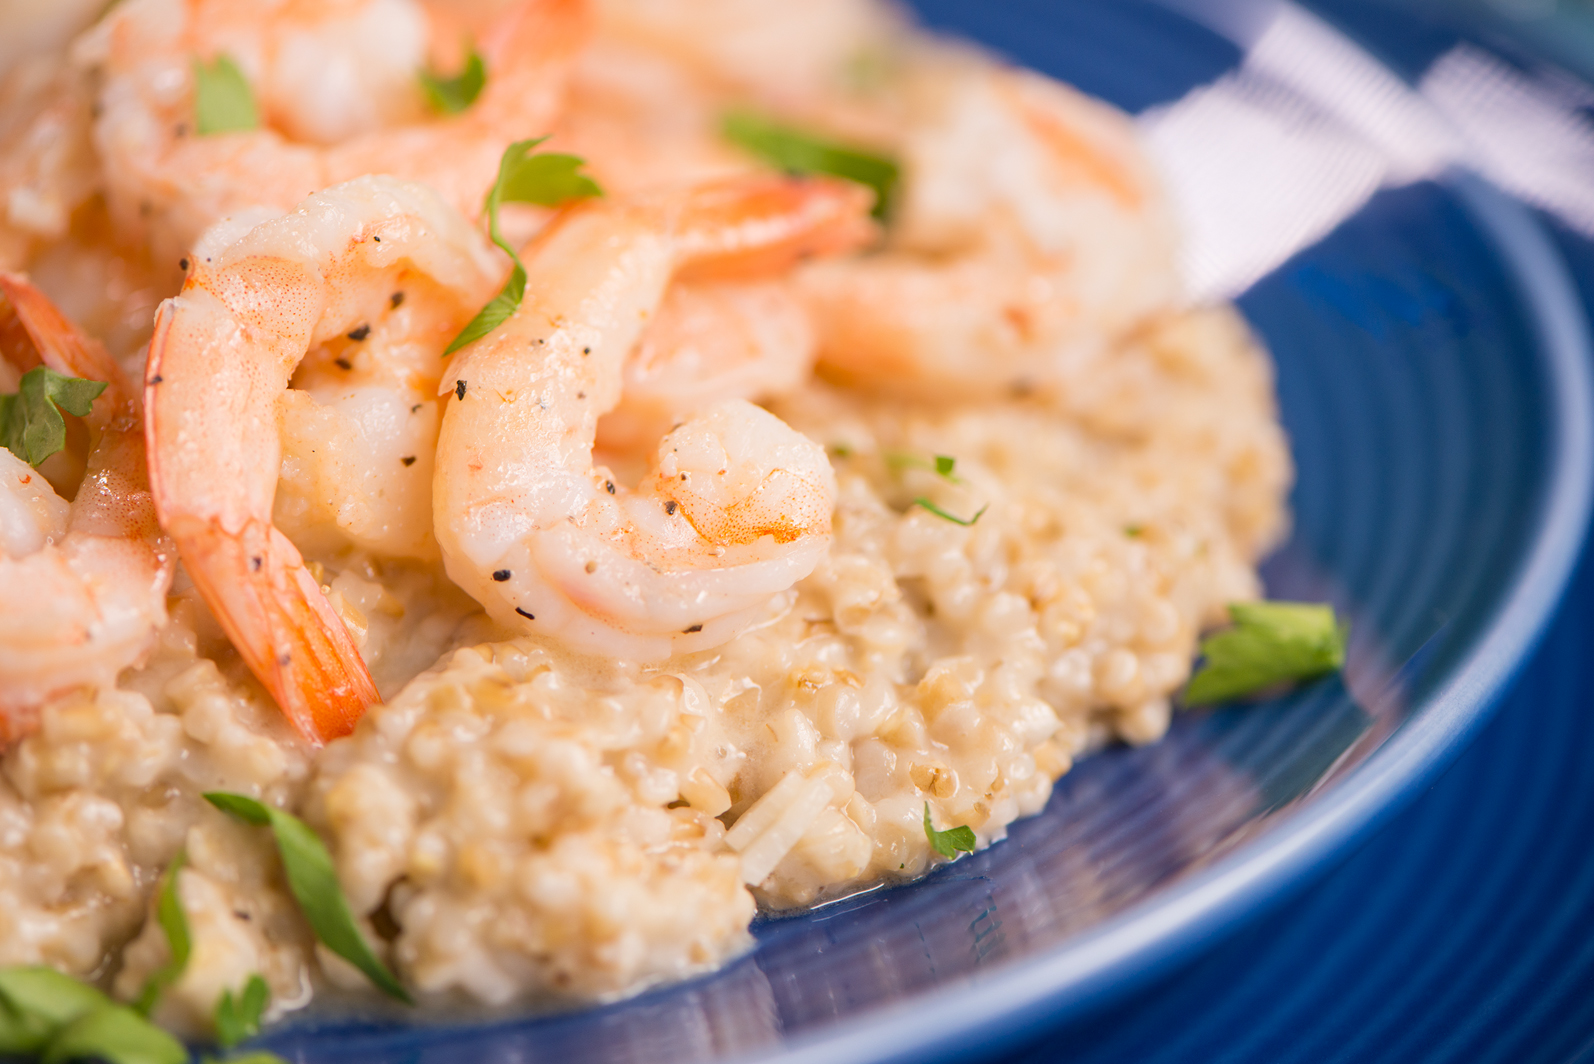 images Shrimp and Cheesy Oats